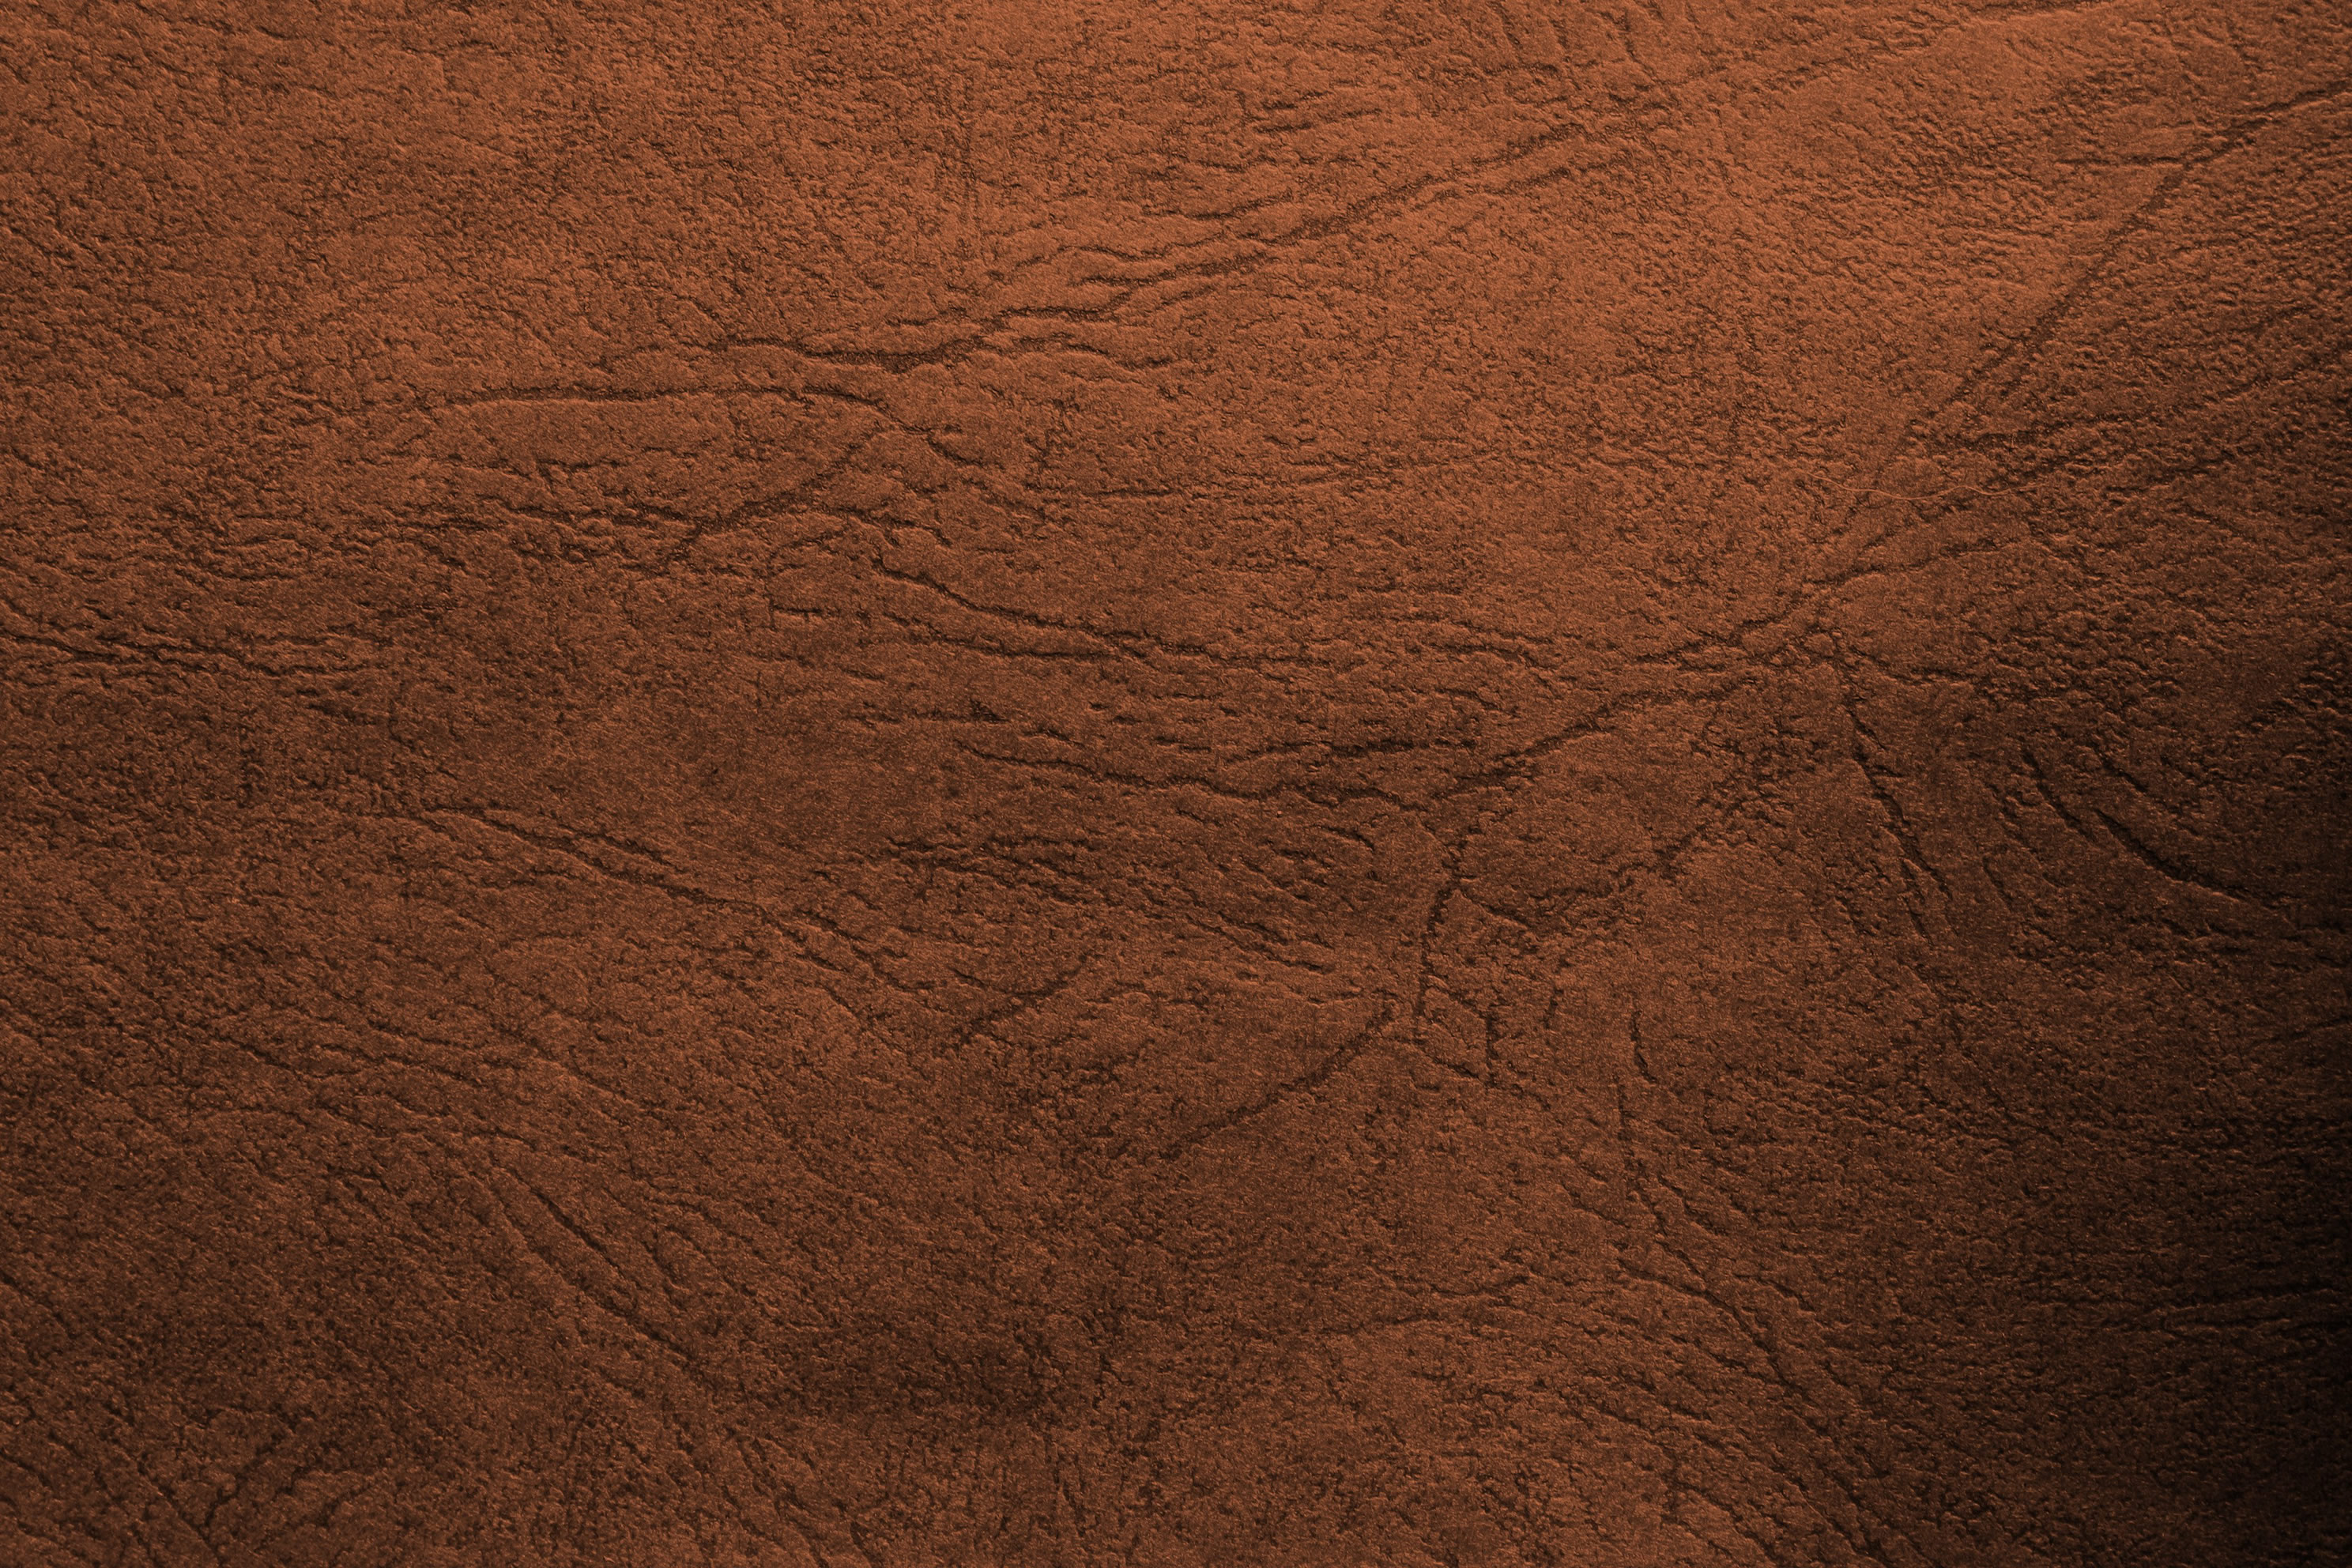 Leather texture background leather background leather for Texture background free download